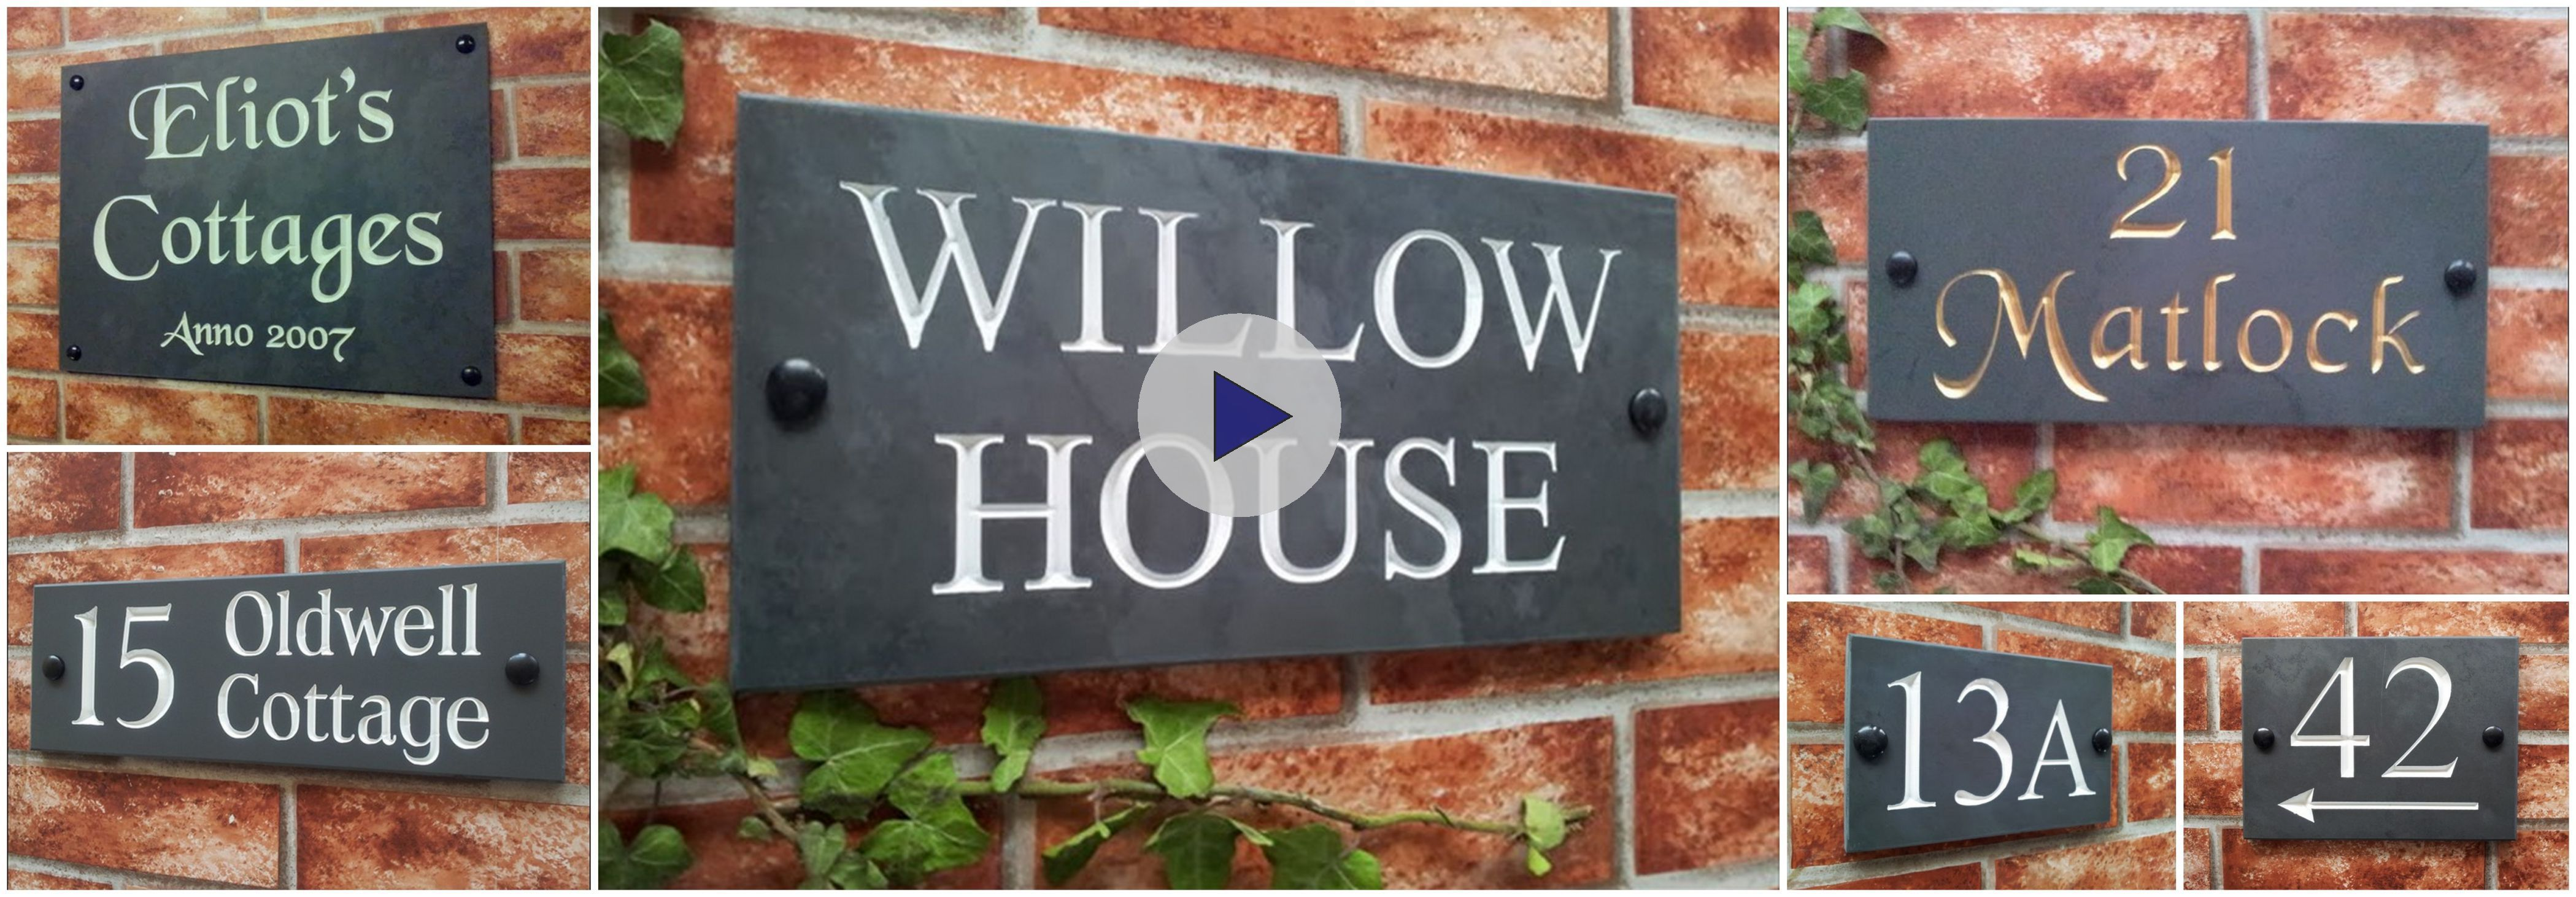 Bespoke engraved slate signs ideal for house names house numbers and address plates personalised to your requirements with a choice of fonts and paint